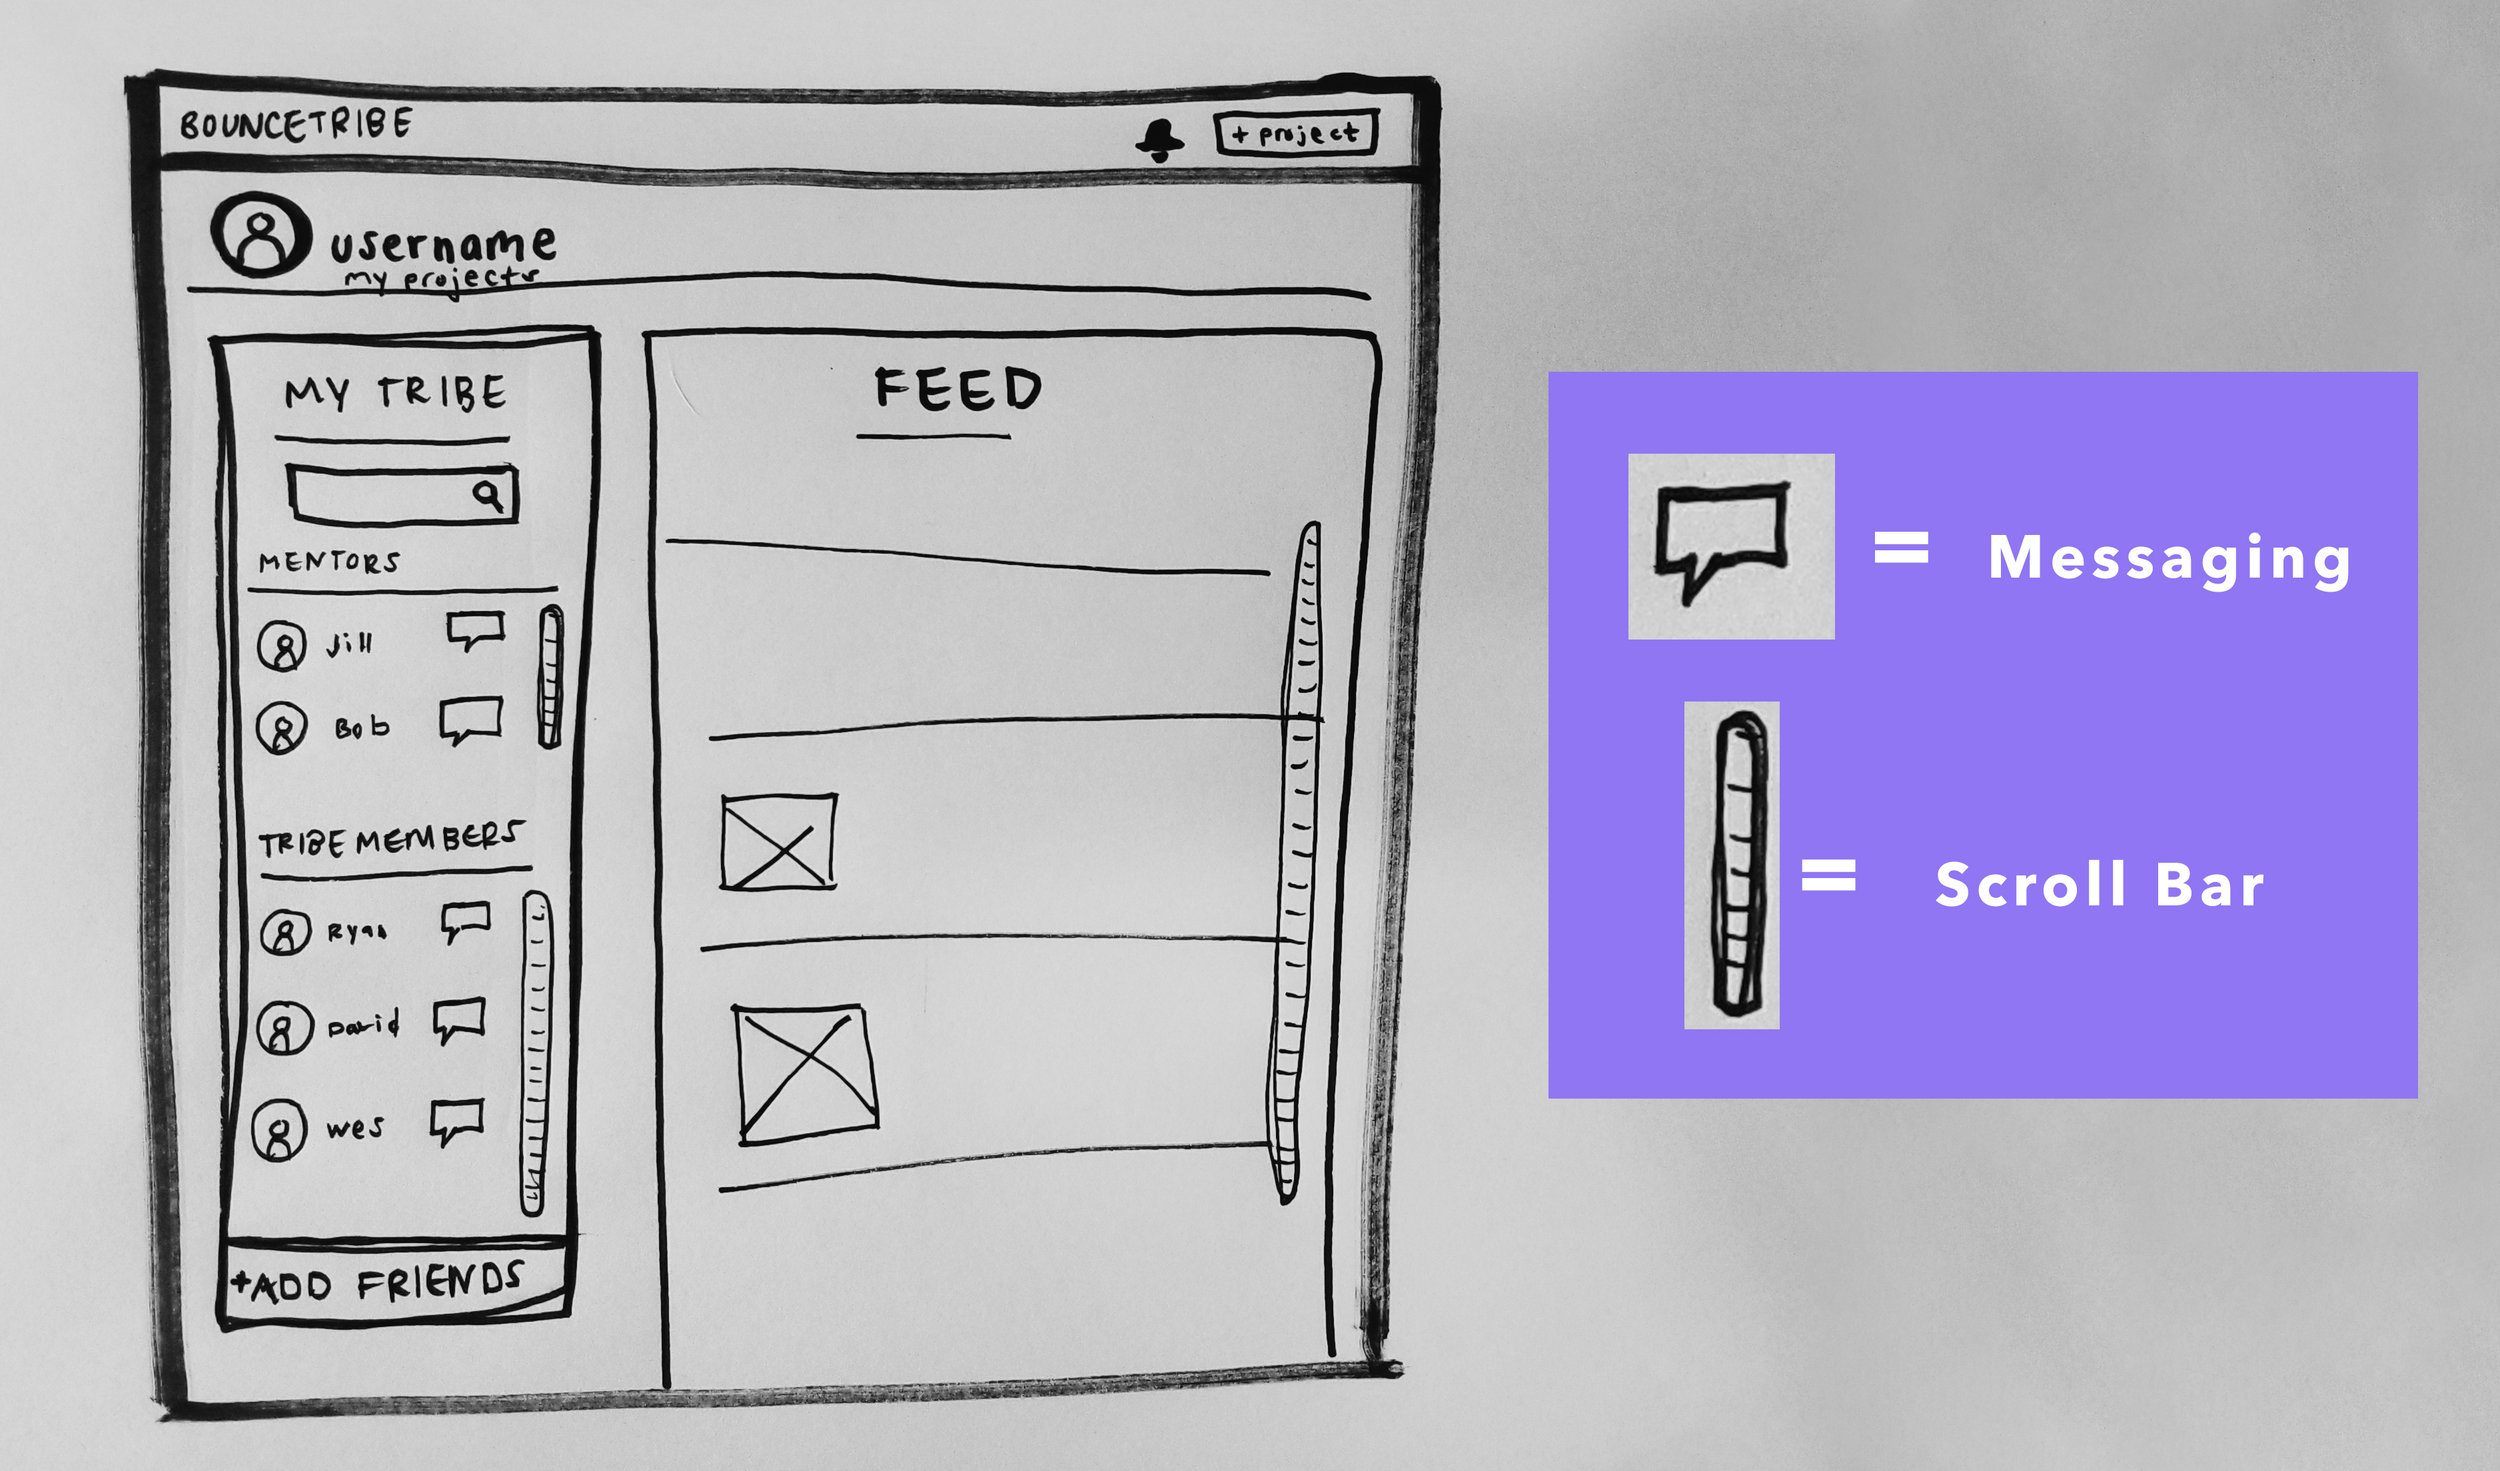 Low-fidelity wireframe of proposed changes to BouceTribe's dashboard, illustrating a centralized, easily accessible location for users to message and search for friends.